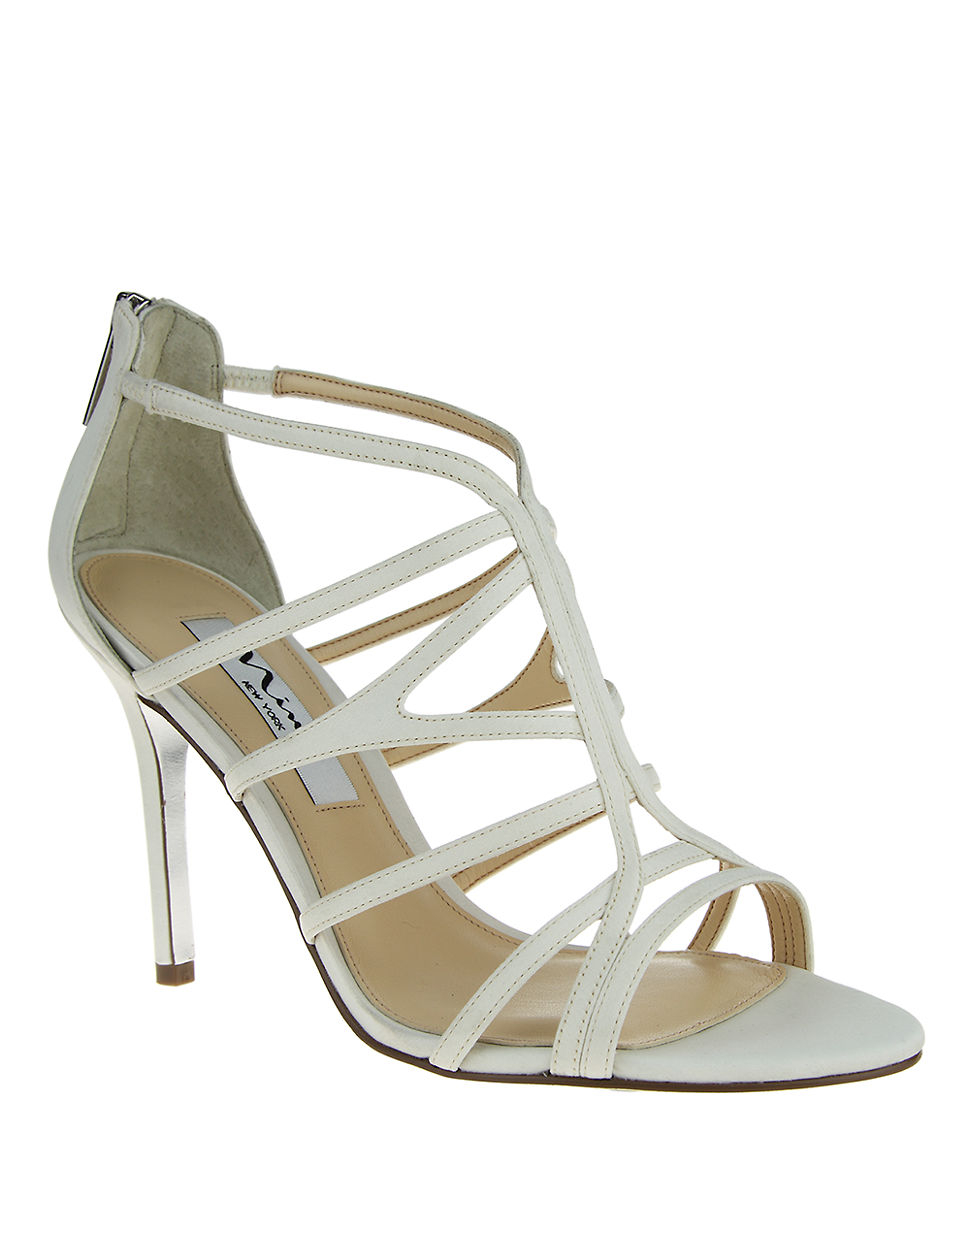 Shop bebe for high heels for women. Find the perfect pair of sexy ankle sandals for the sophisticated woman in a variety of styles. FREE Shipping over $!